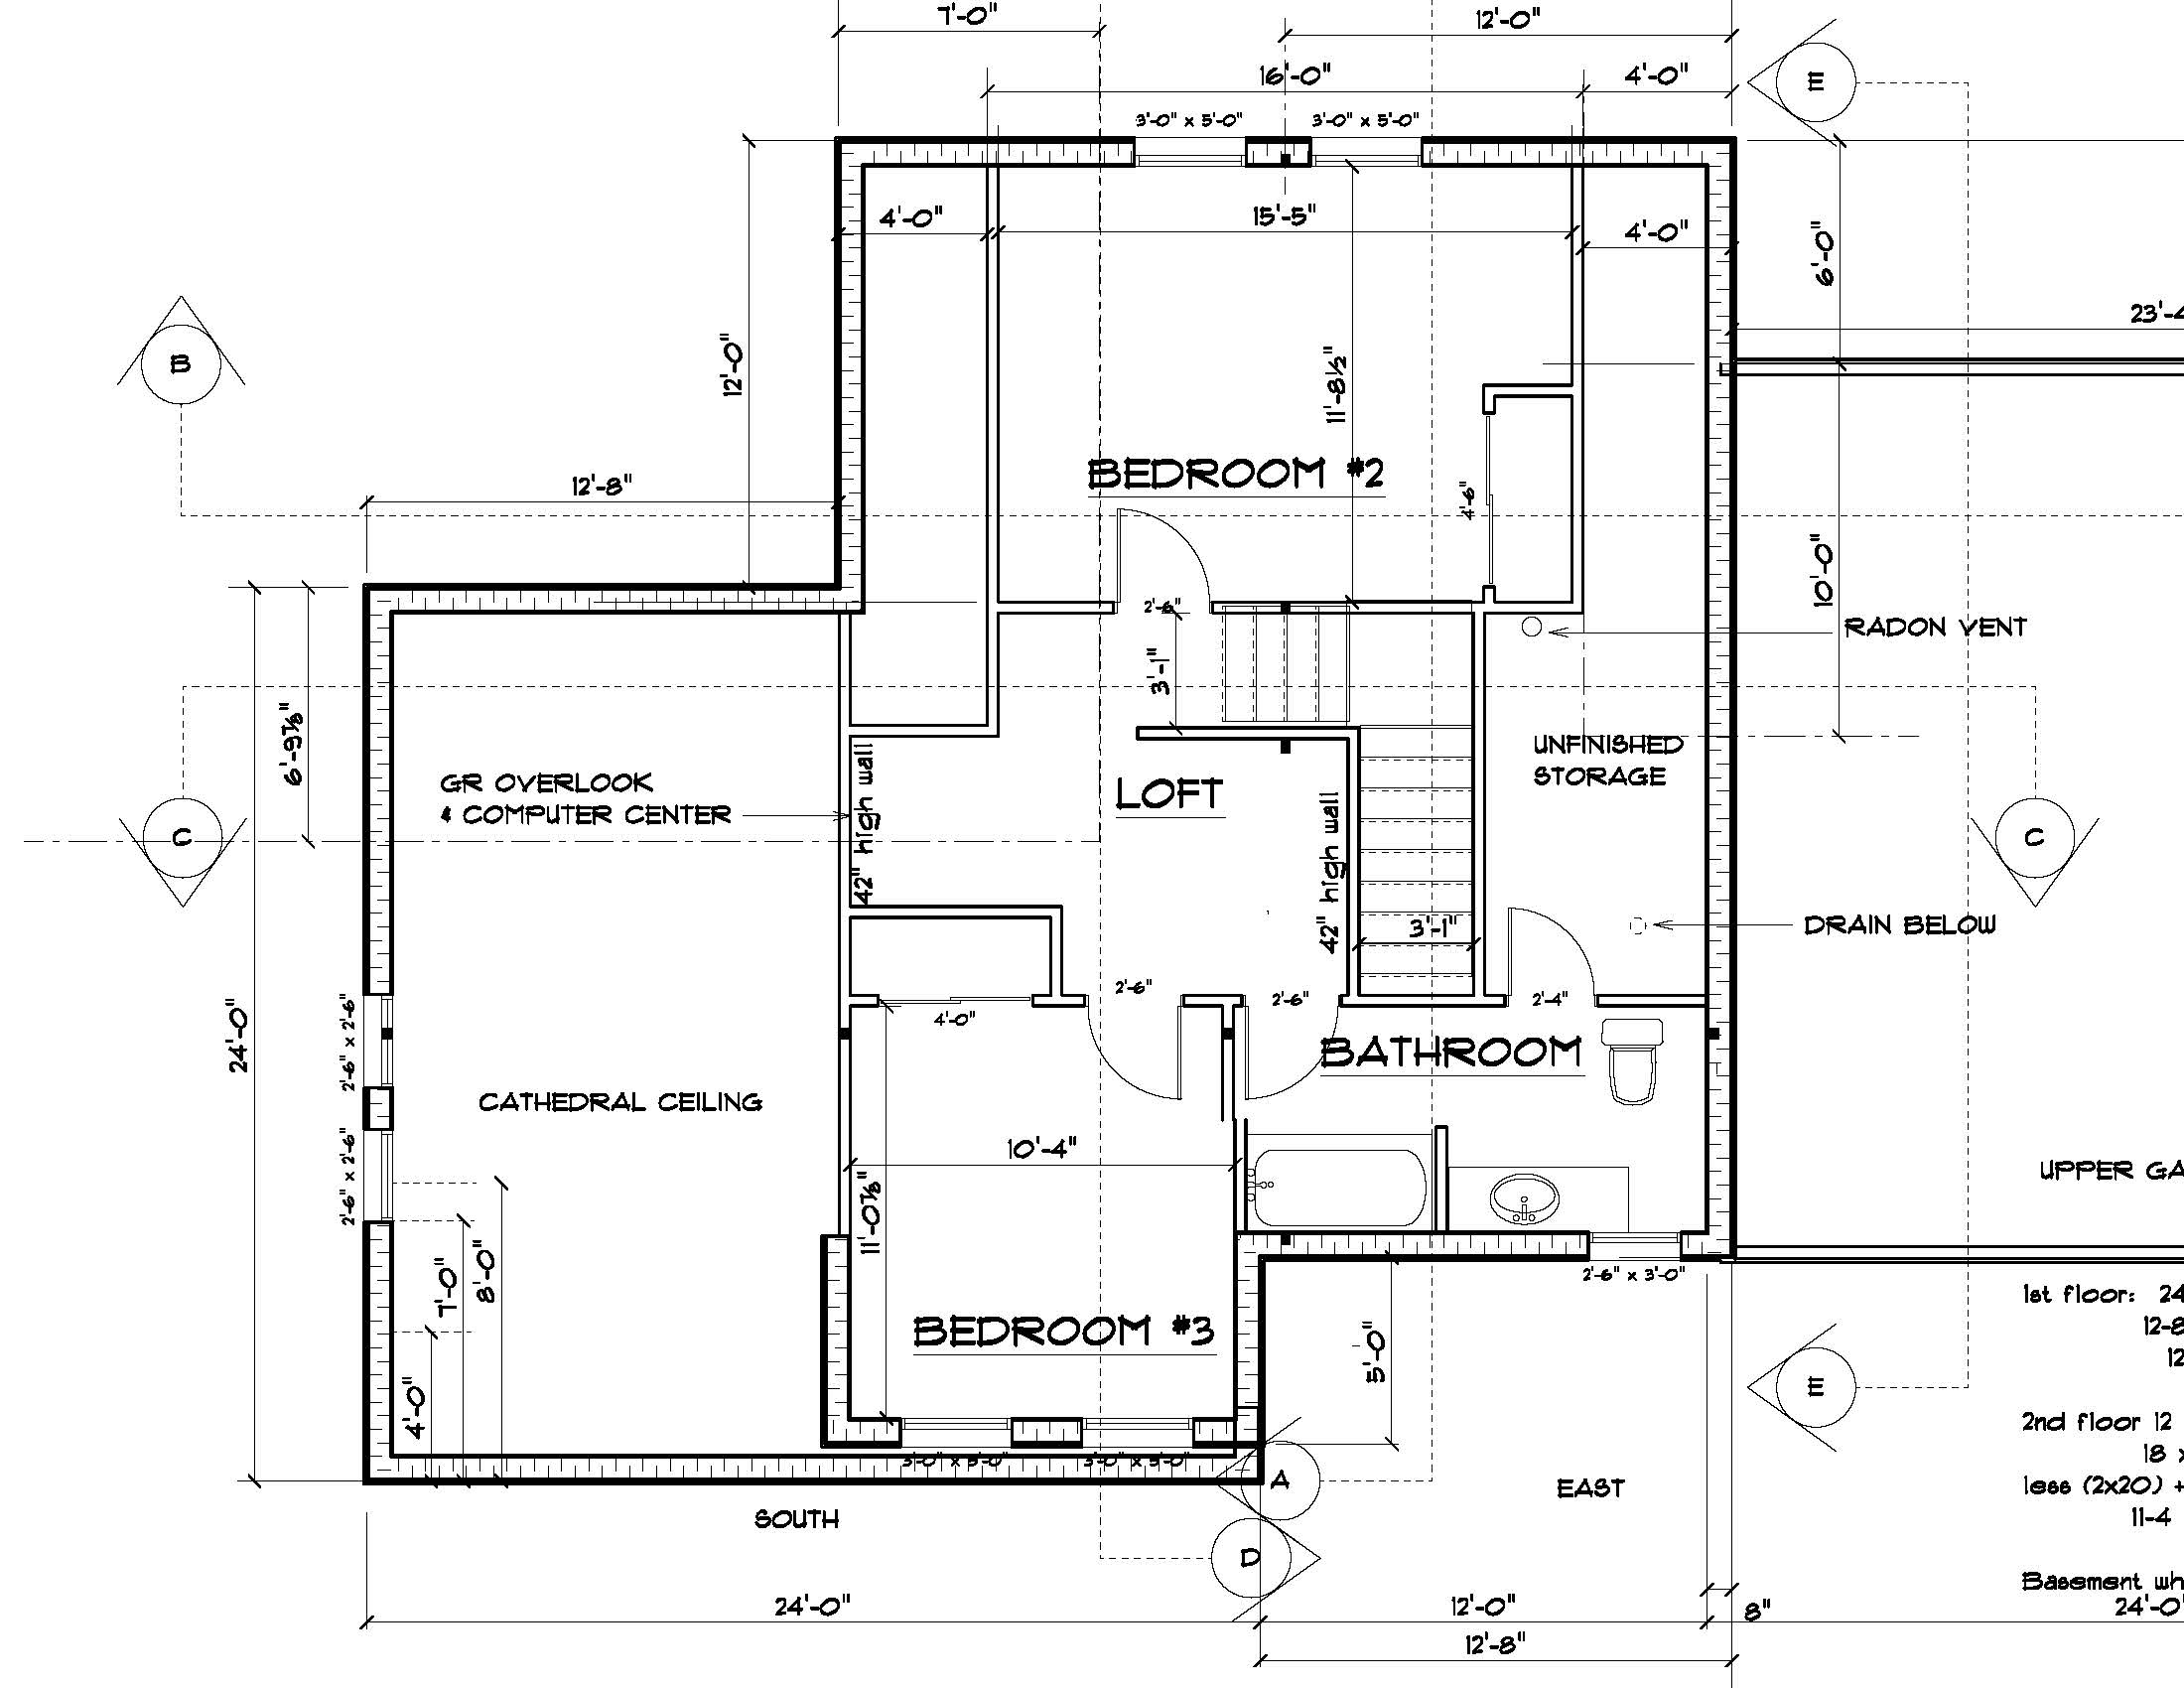 Sample Floor Plan 1 Rh Irving Home Buildersrh Irving